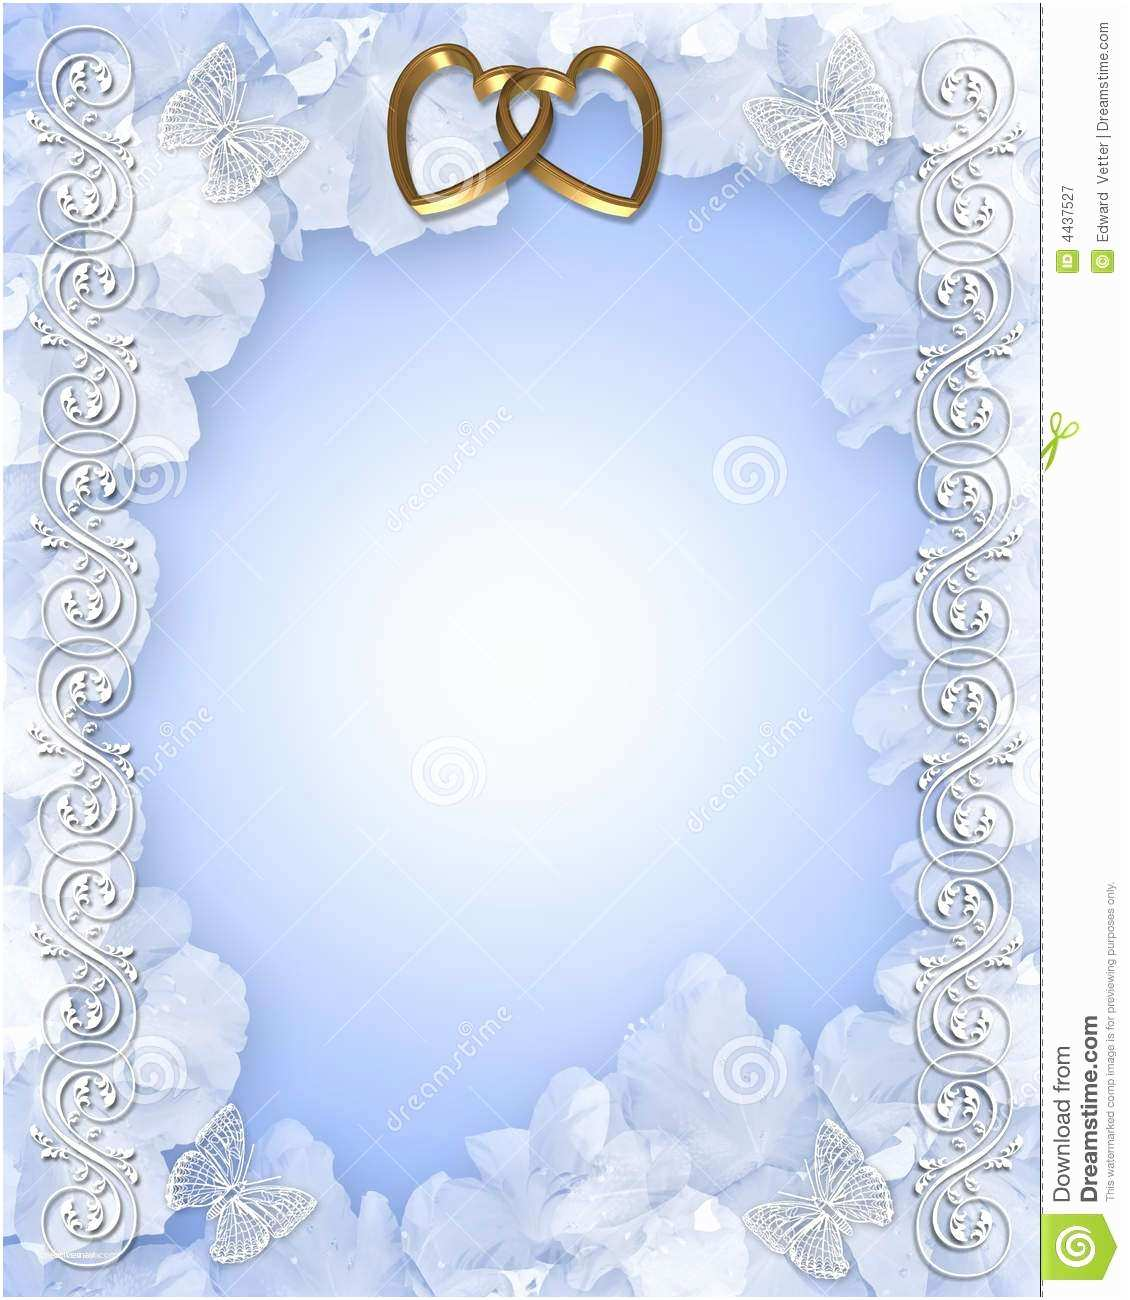 Background Designs for Wedding Invitations Free Wedding Invitation Background Designs Free